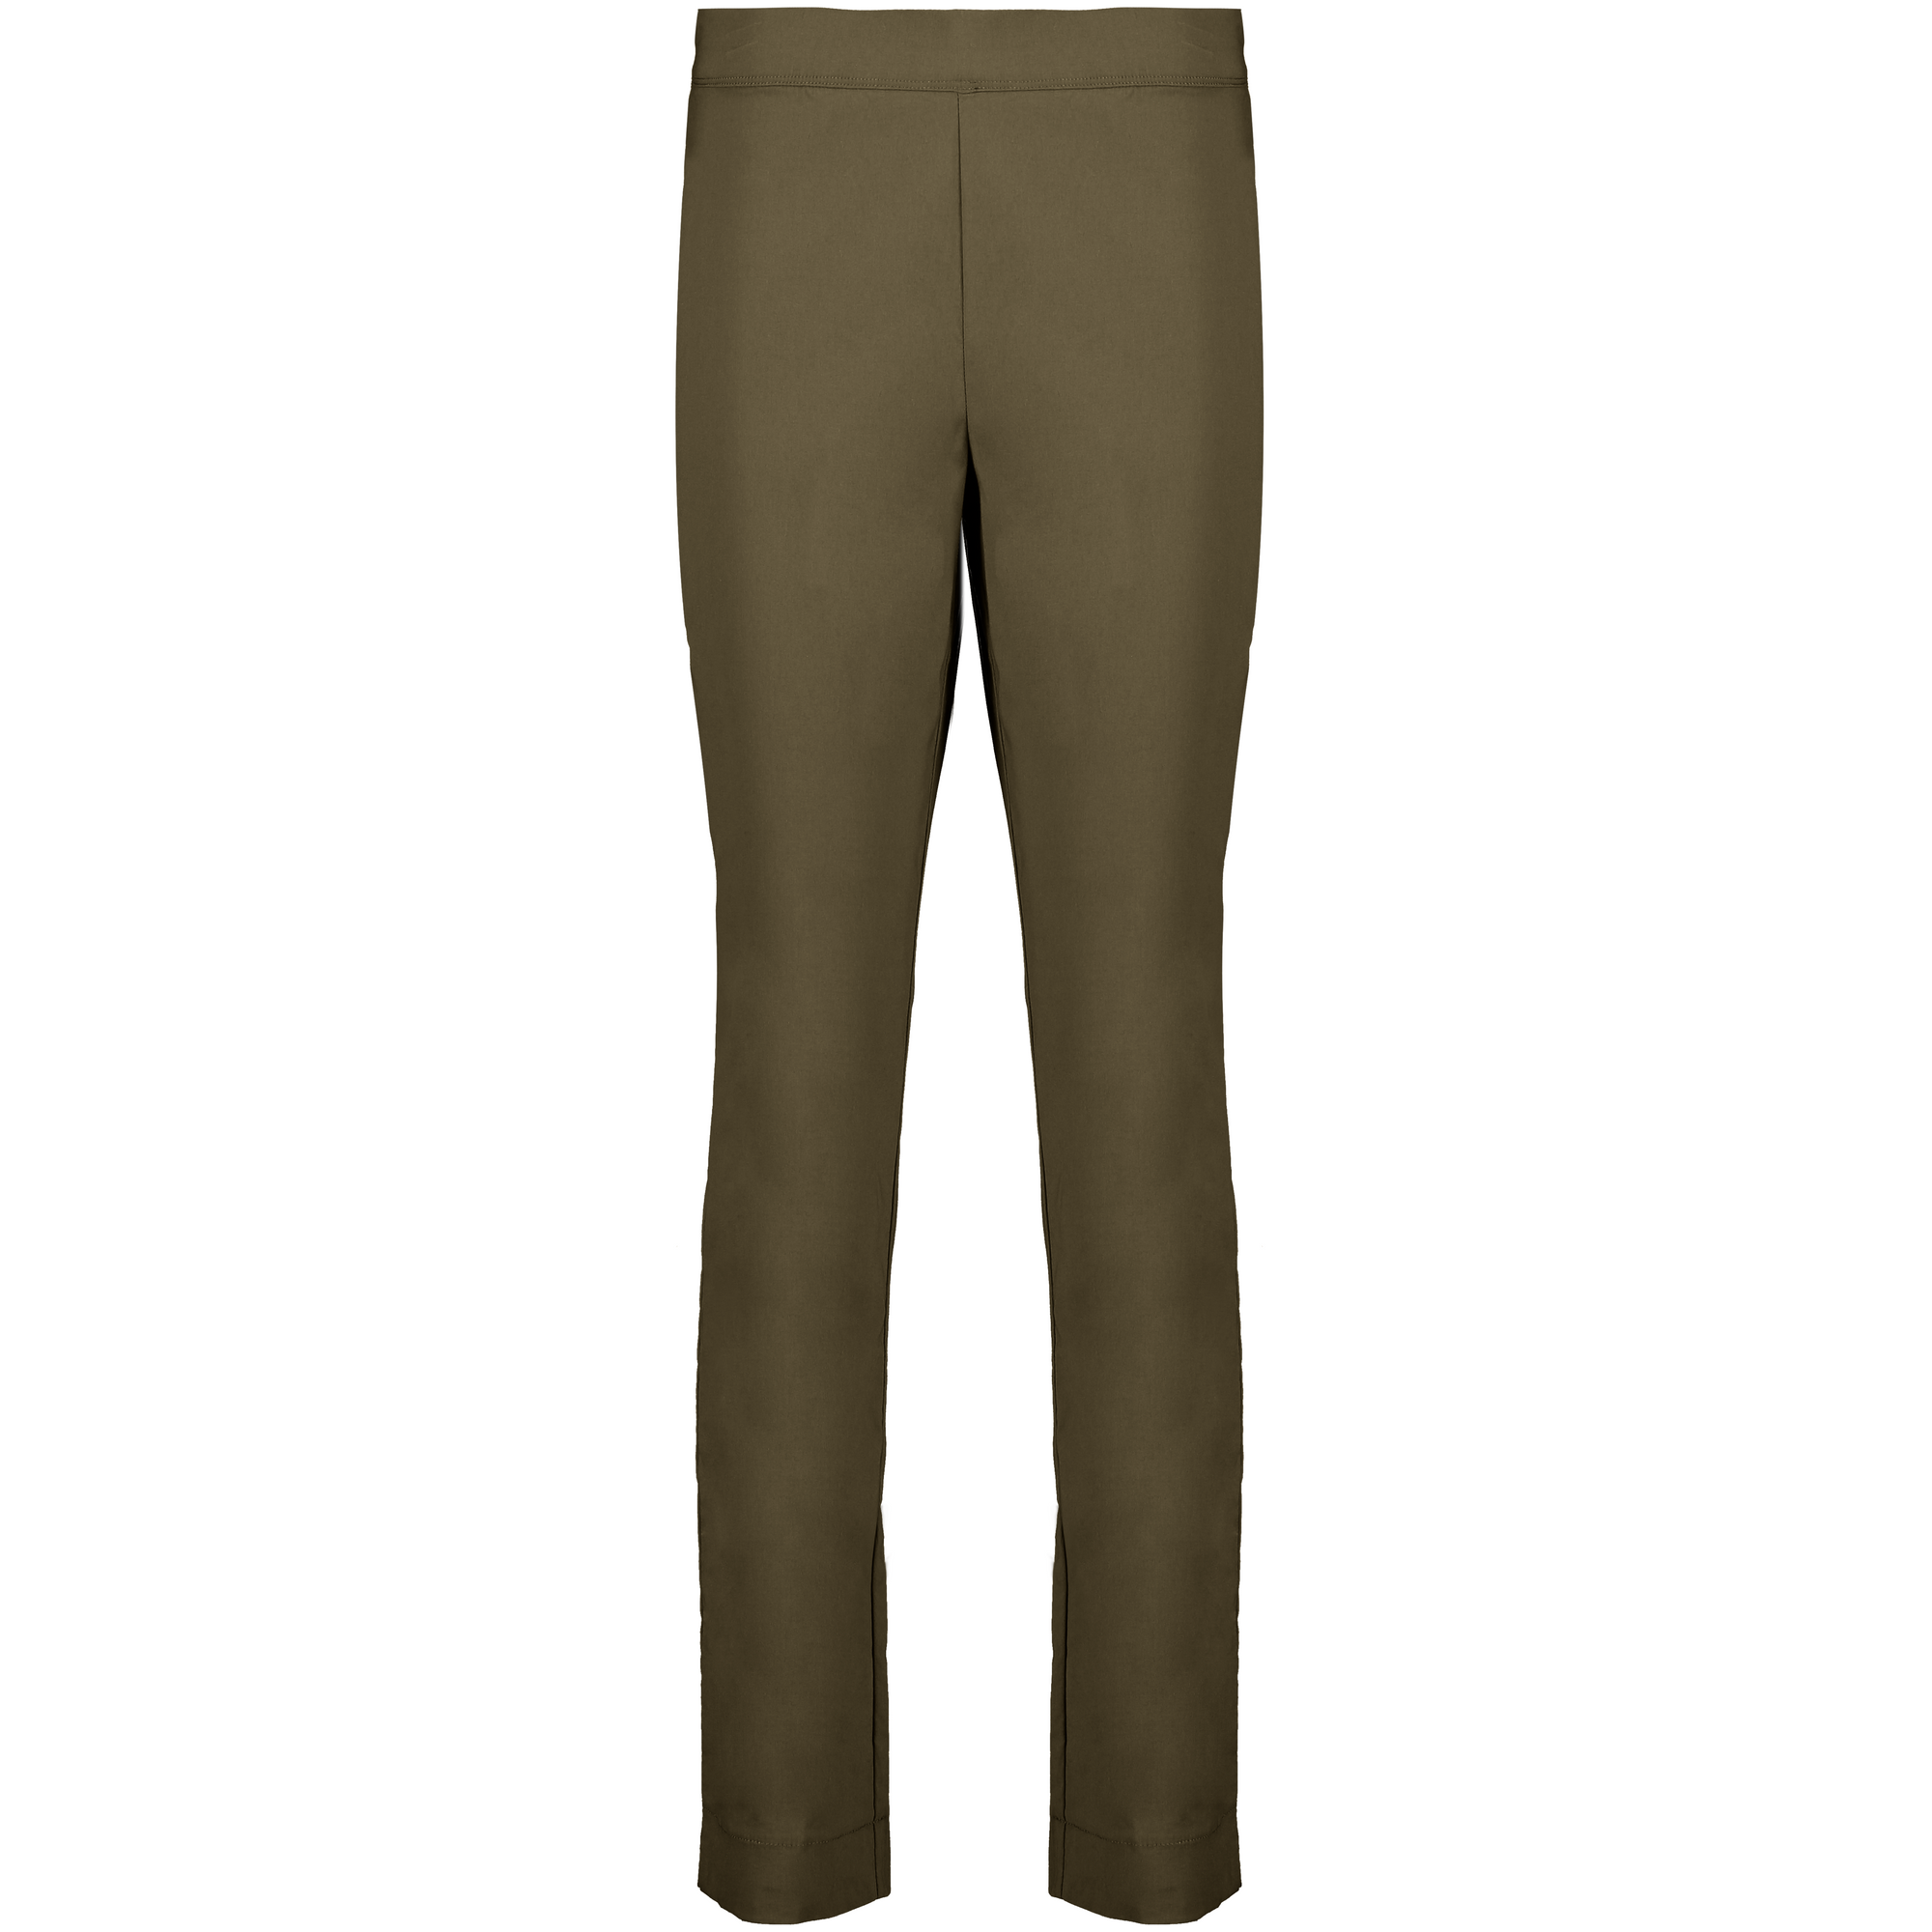 Foil Signature Full length Slim trapeze pant in Plain Caper